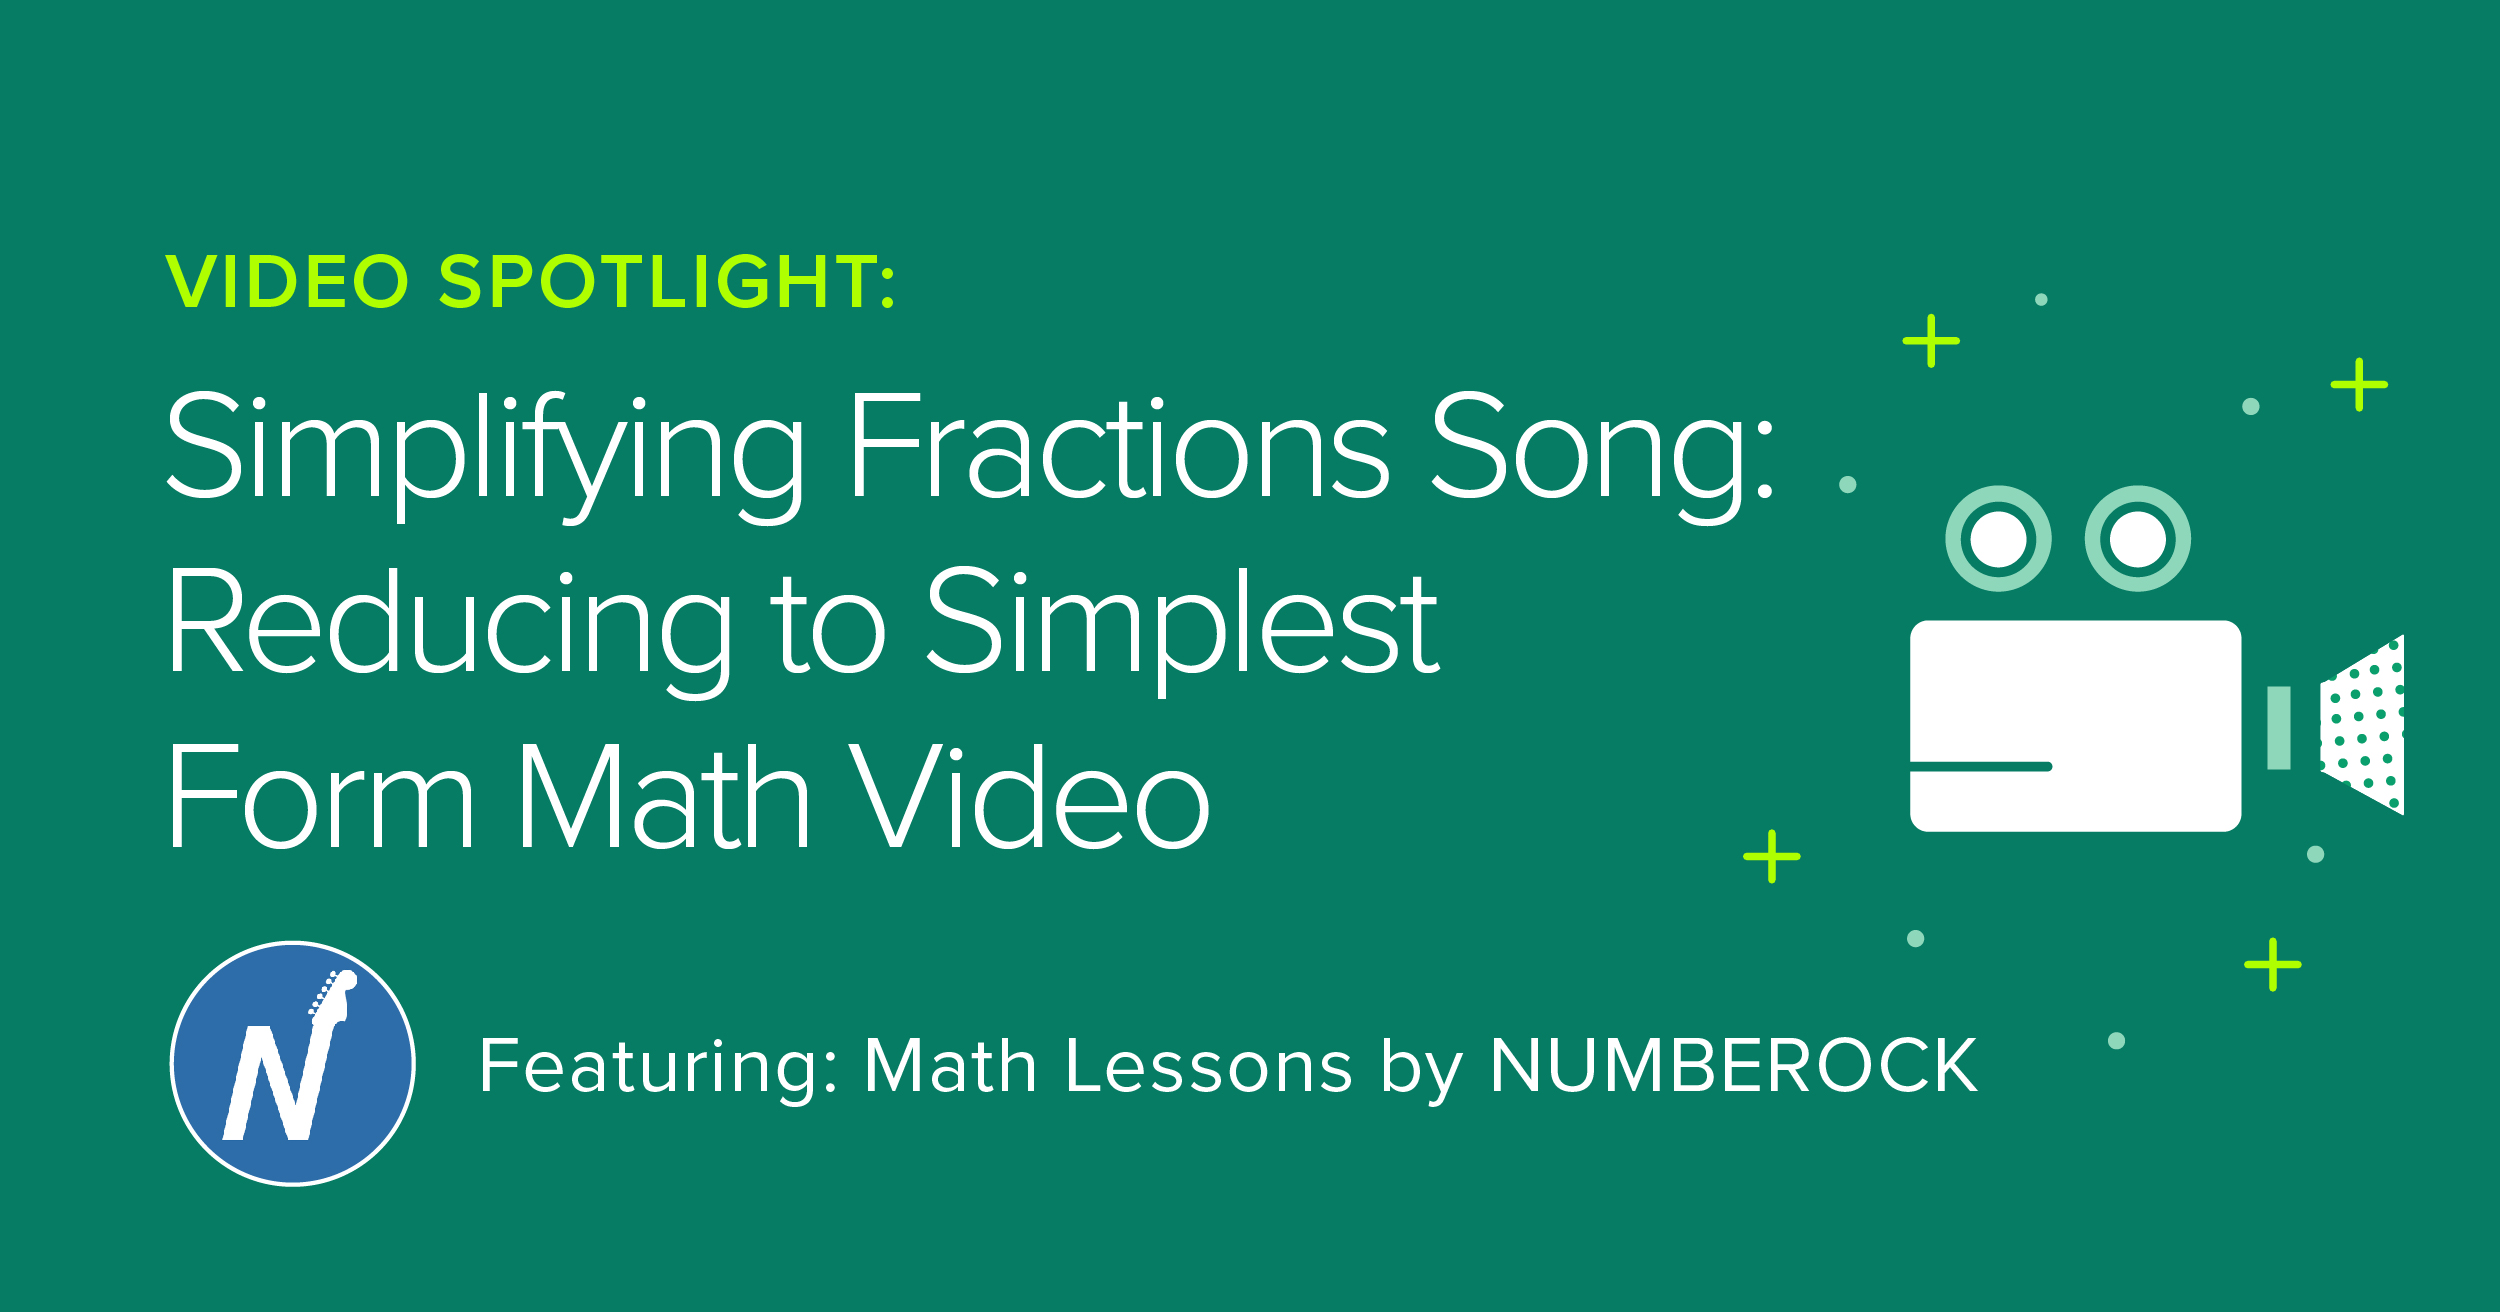 """If you're considering beginning any video work for TPT, my advice to you is to leap and the bridge will appear"", says Math Lessons by NUMBEROCK"